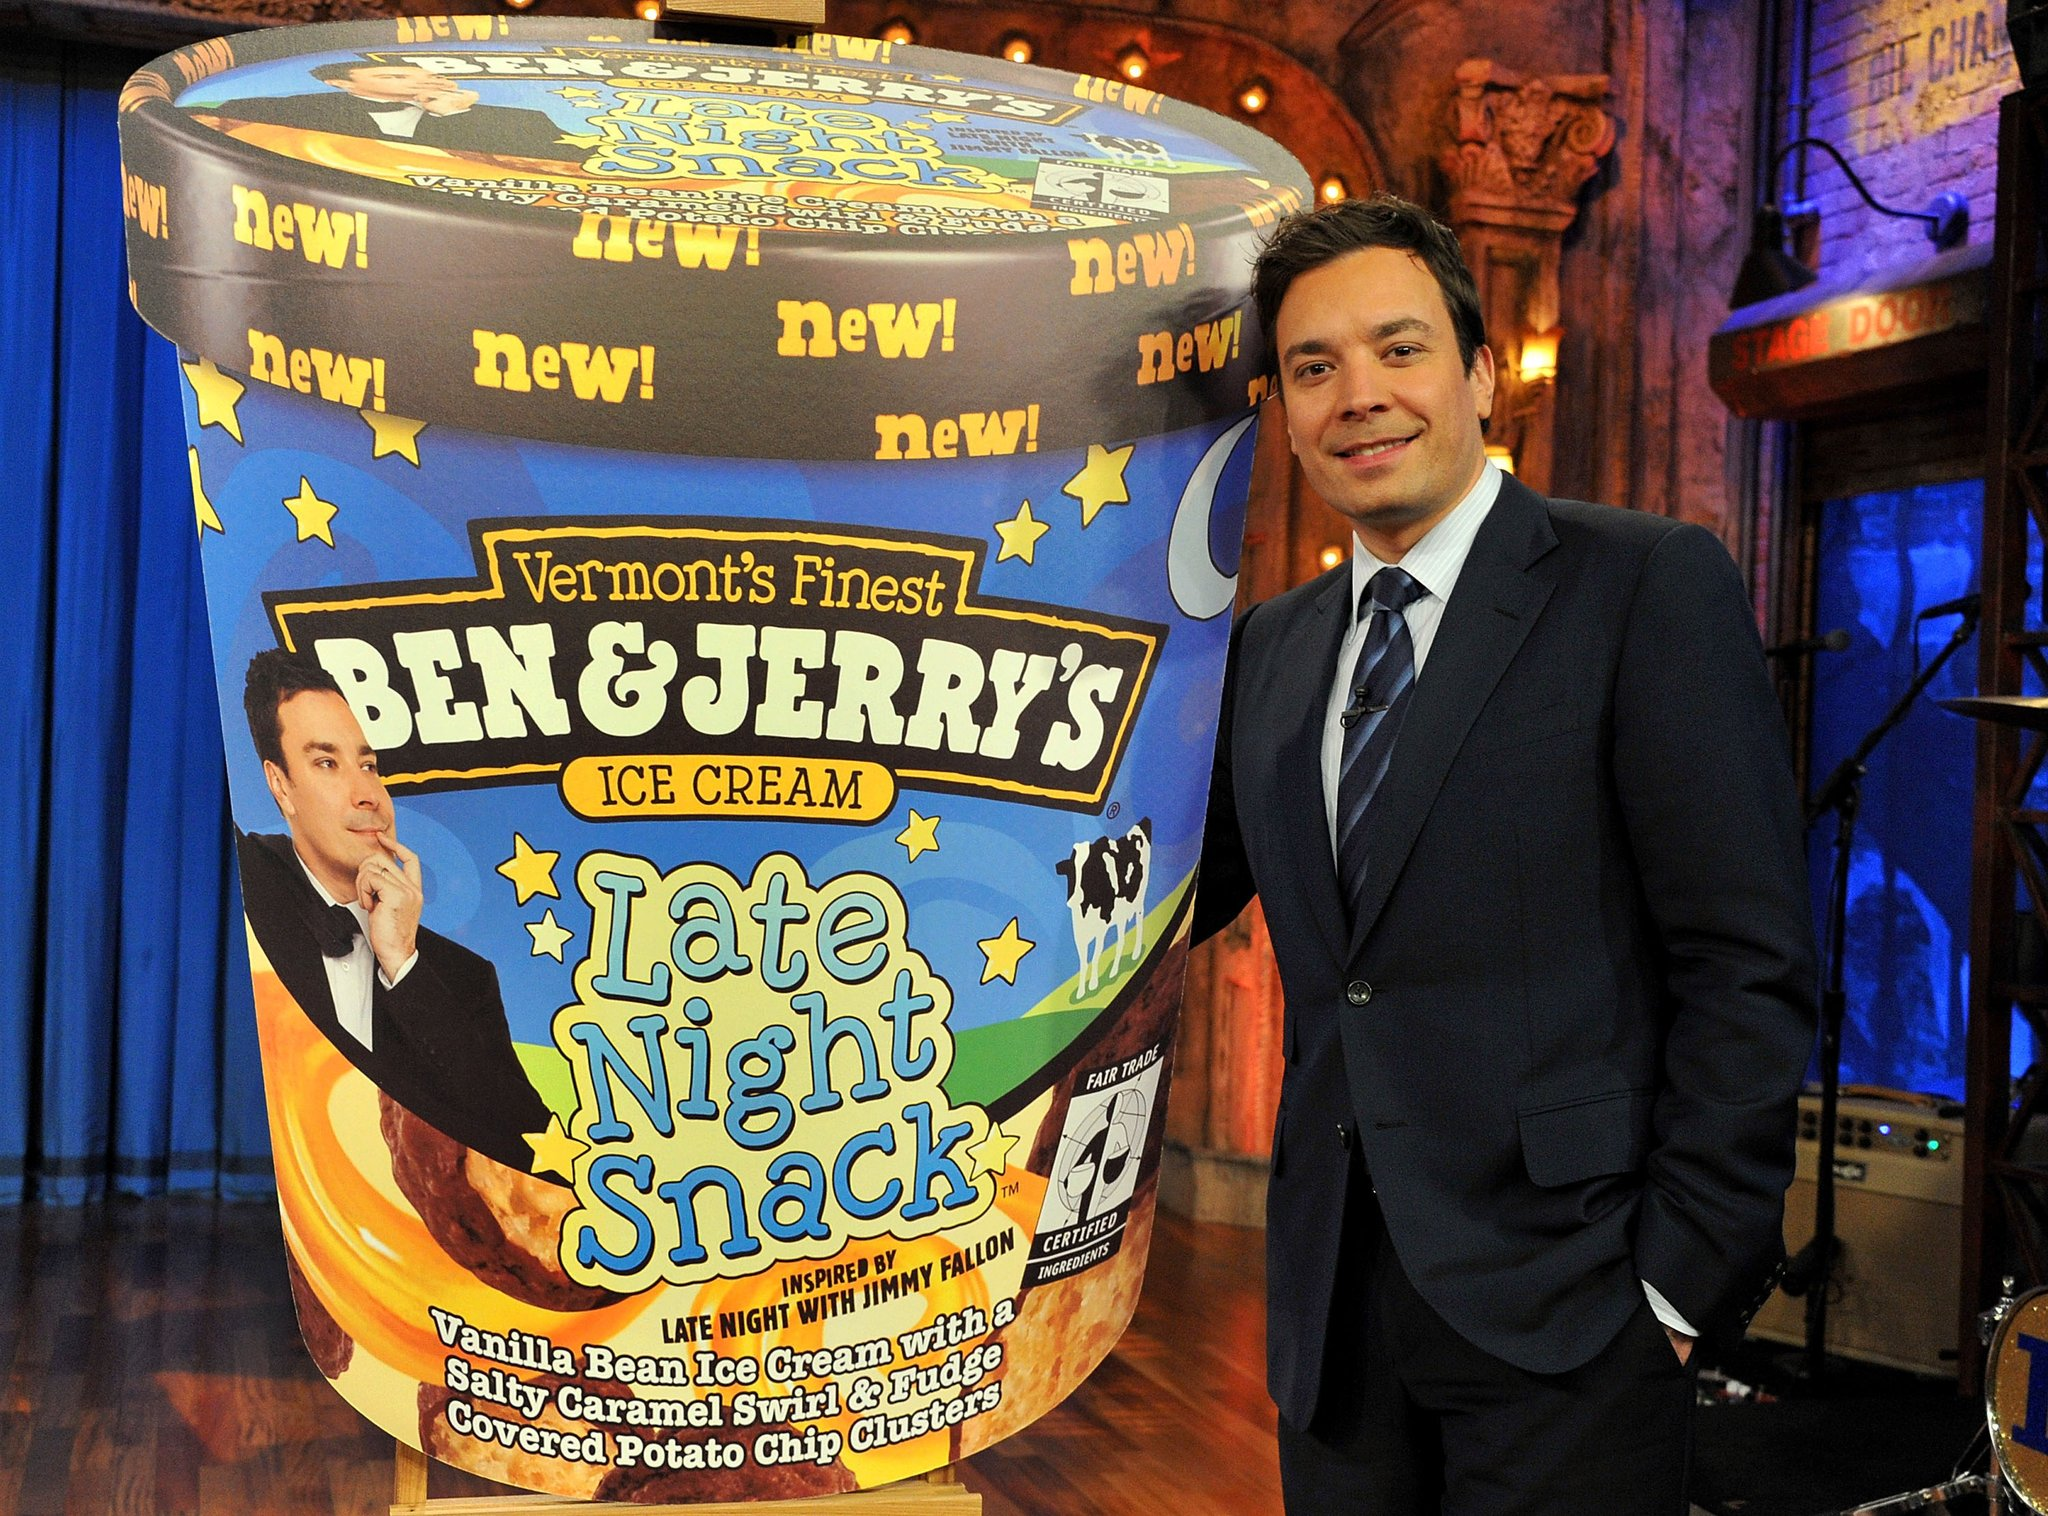 Jimmy Fallon Introduces Late Night Snack Ben & Jerry's Flavor